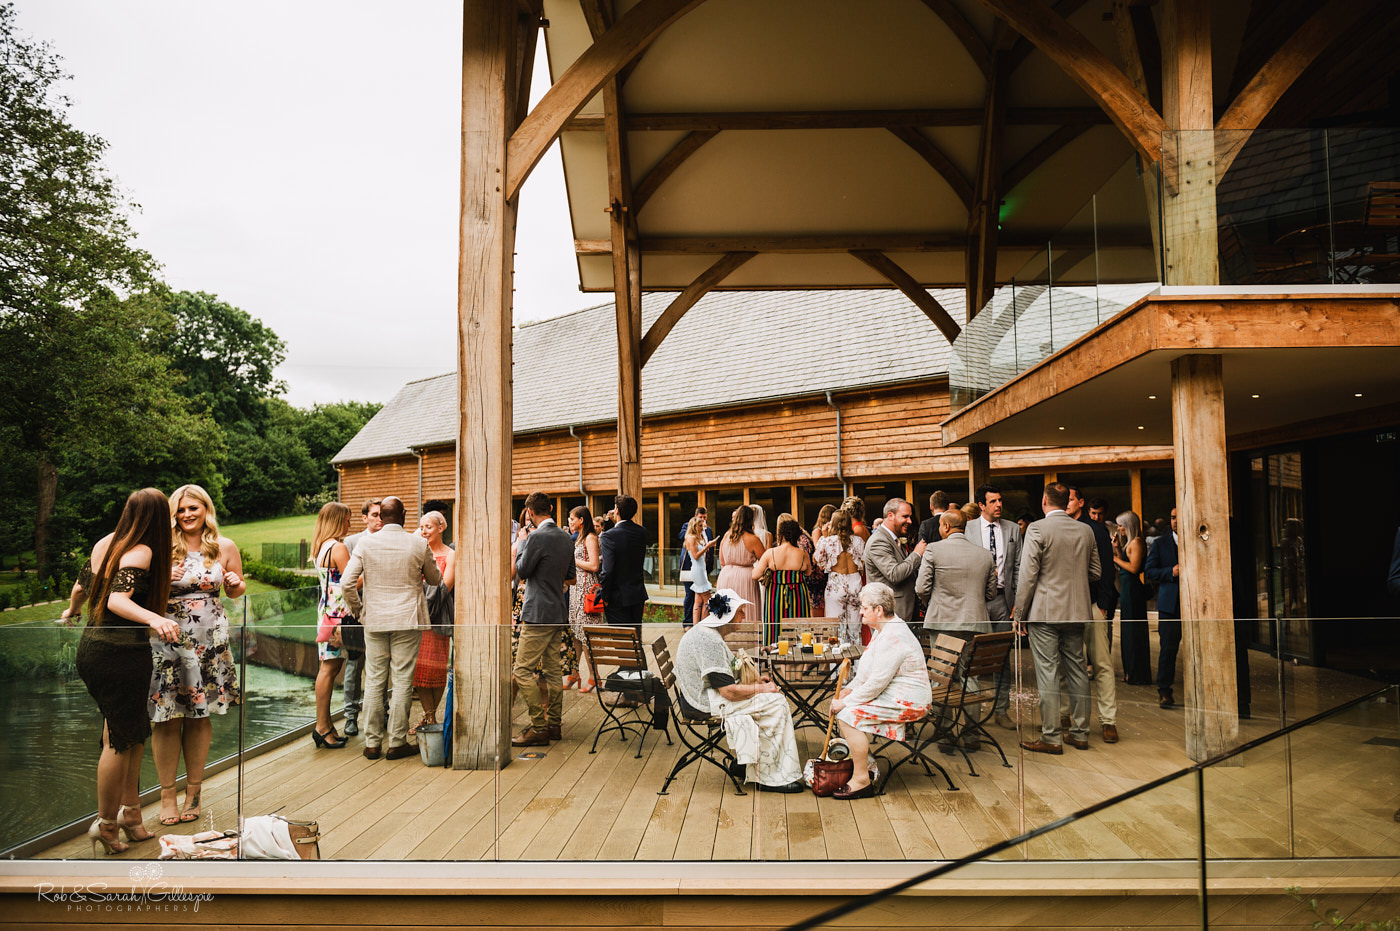 Wedding reception with guests on decking overlooking pond